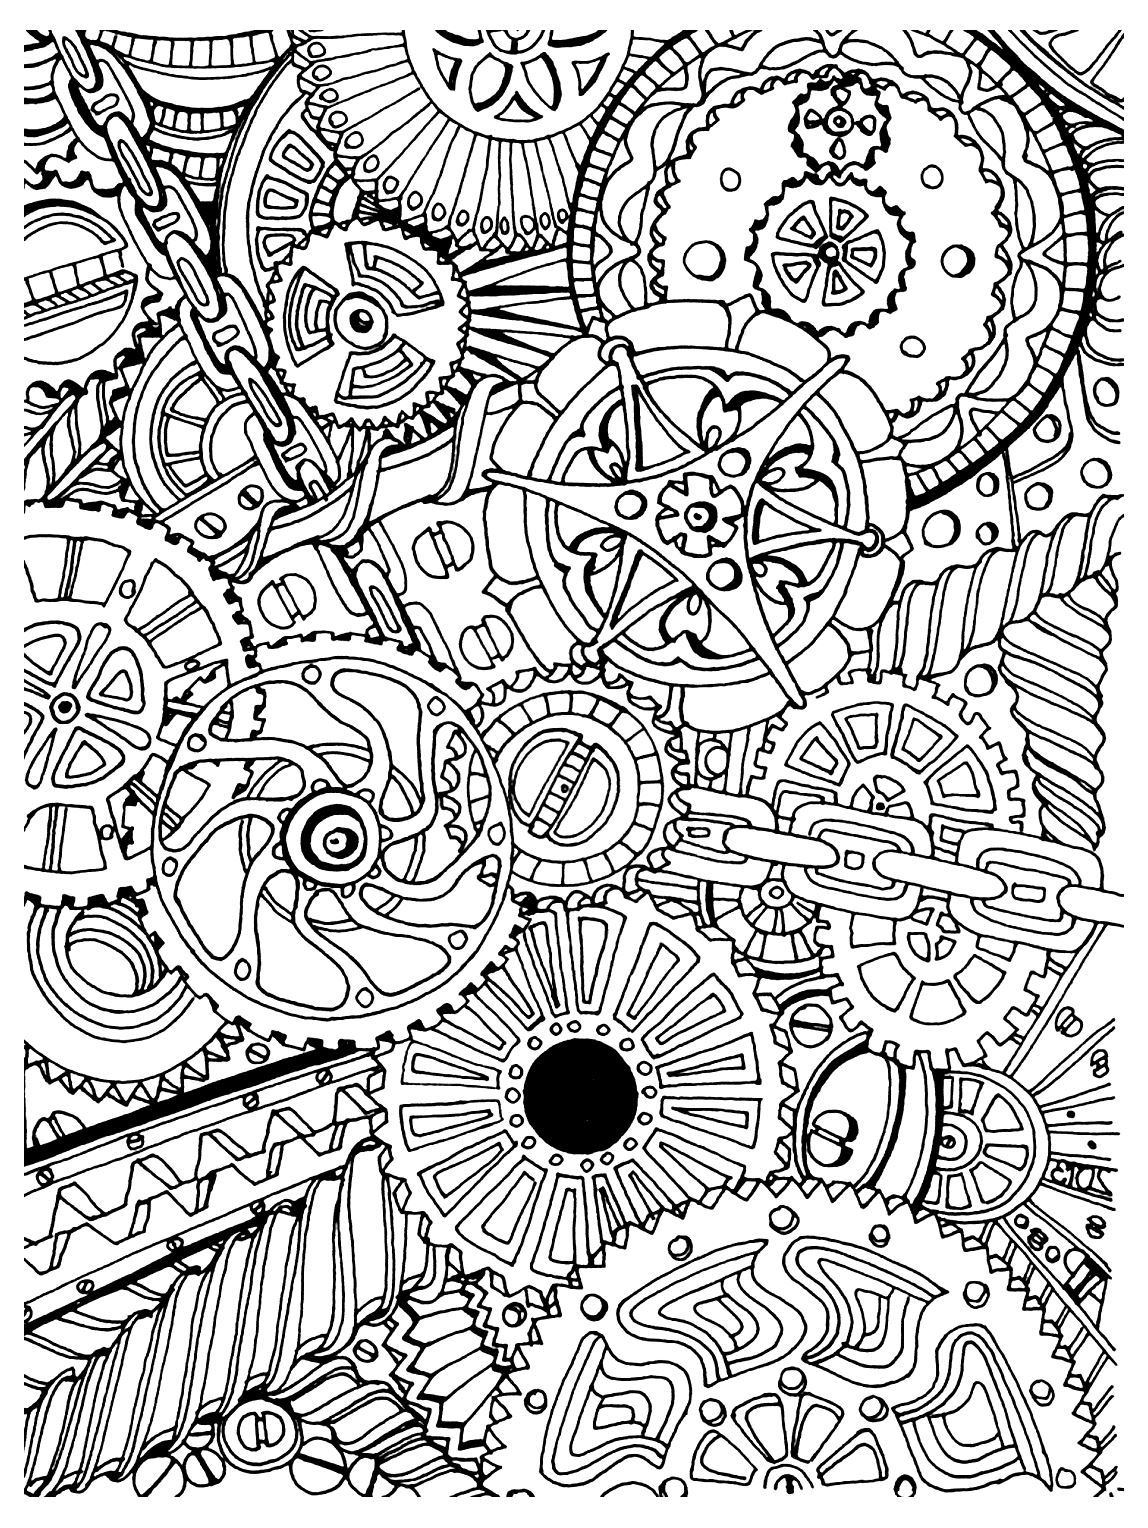 Zen Anti Stress Mechanisms To Print Mechanisms From The Gallery Zen Anti Stress Keywords Mechanism Steampunk Coloring Coloring Books Coloring Pages